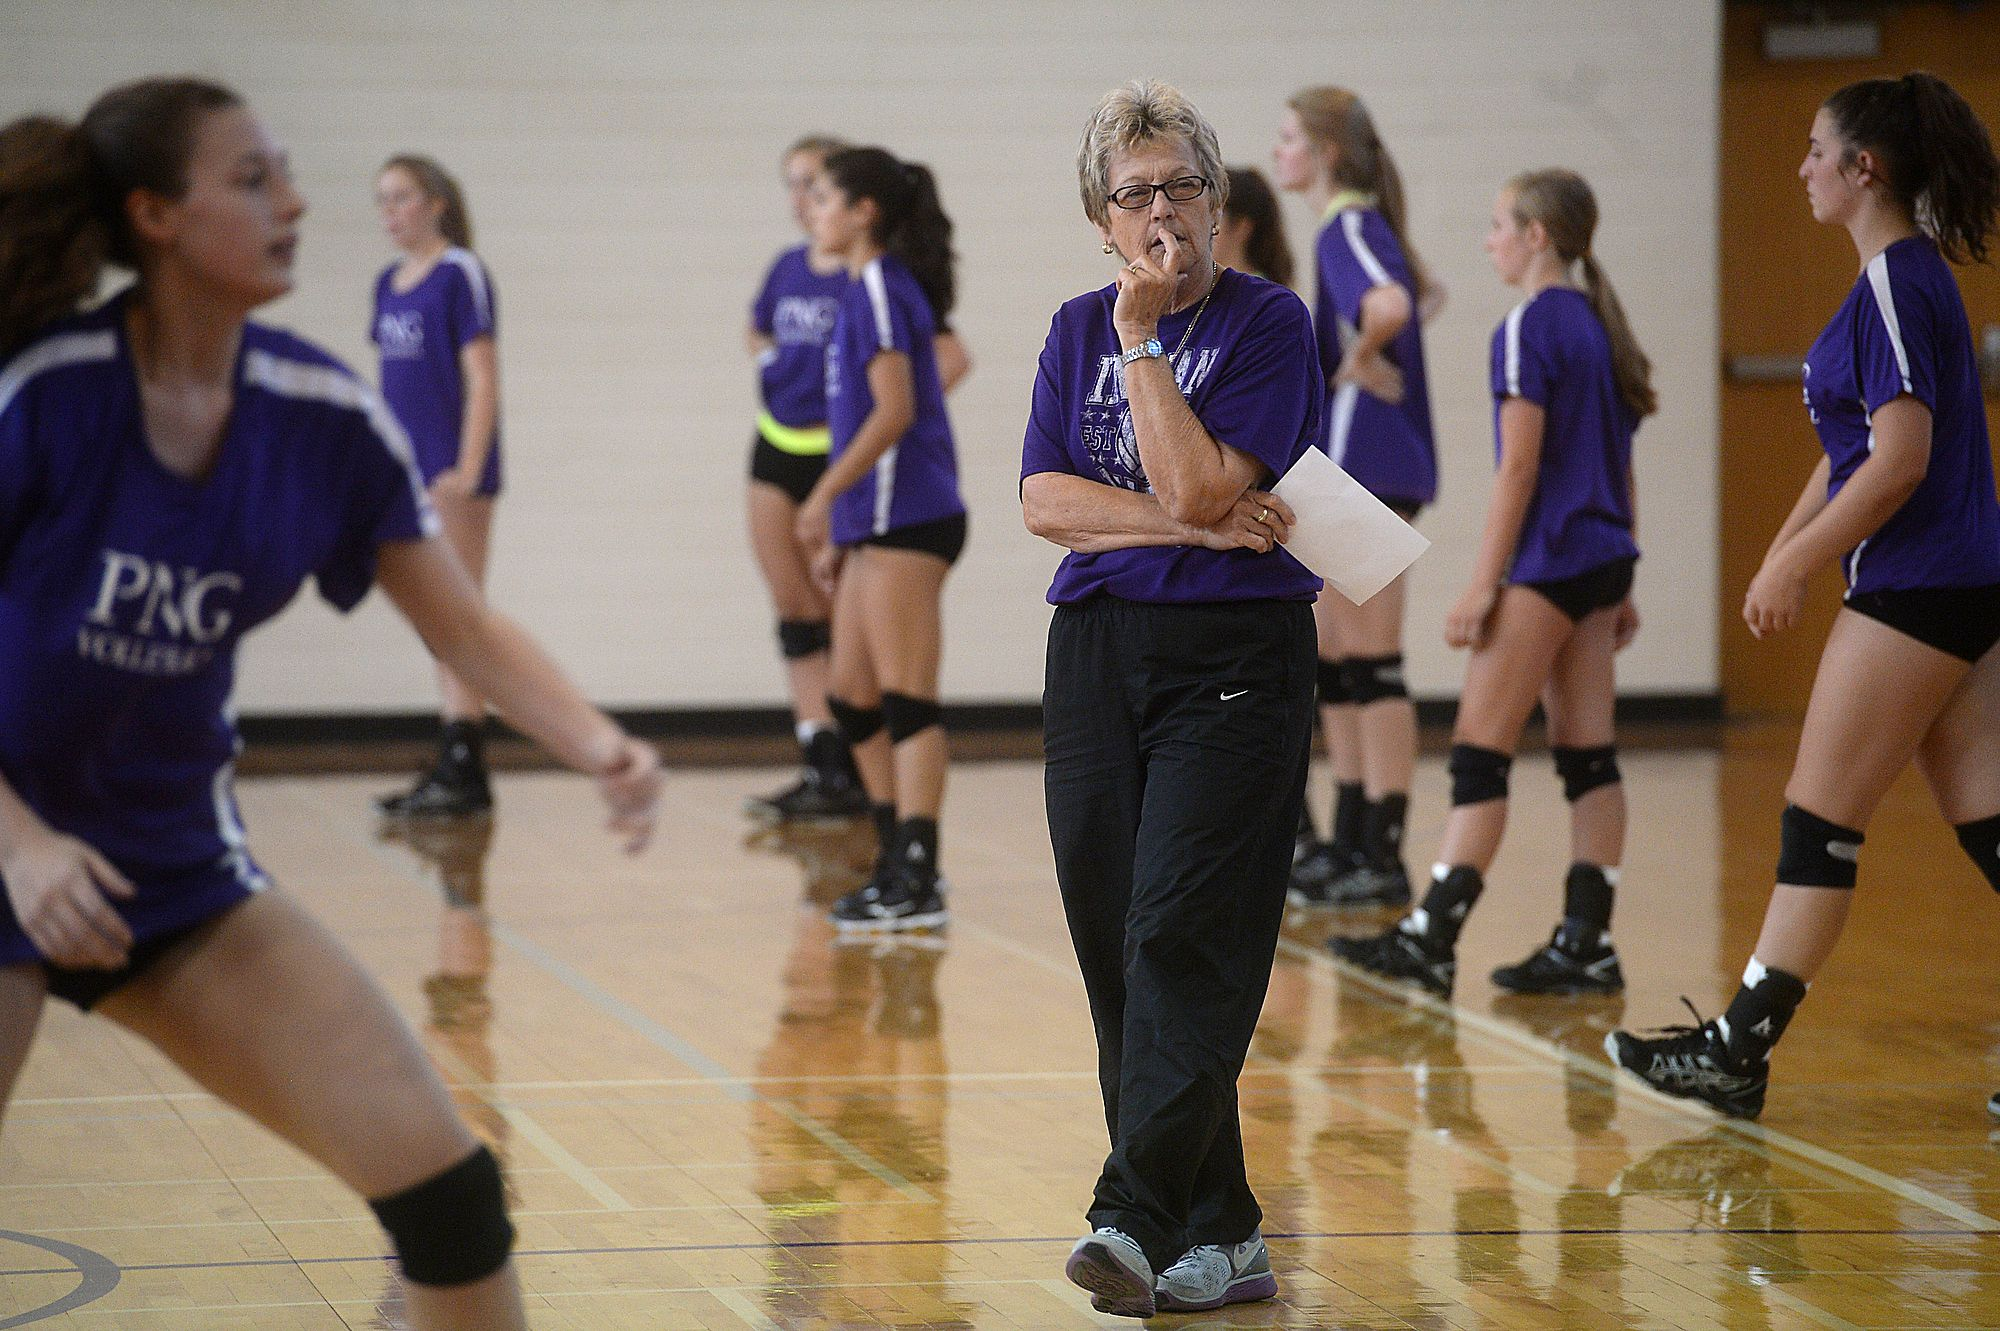 Pn G Volleyball Coach To Be Inducted In Tgca Hall Of Fame Next Week Coaching Volleyball Athletic Events Body Squats